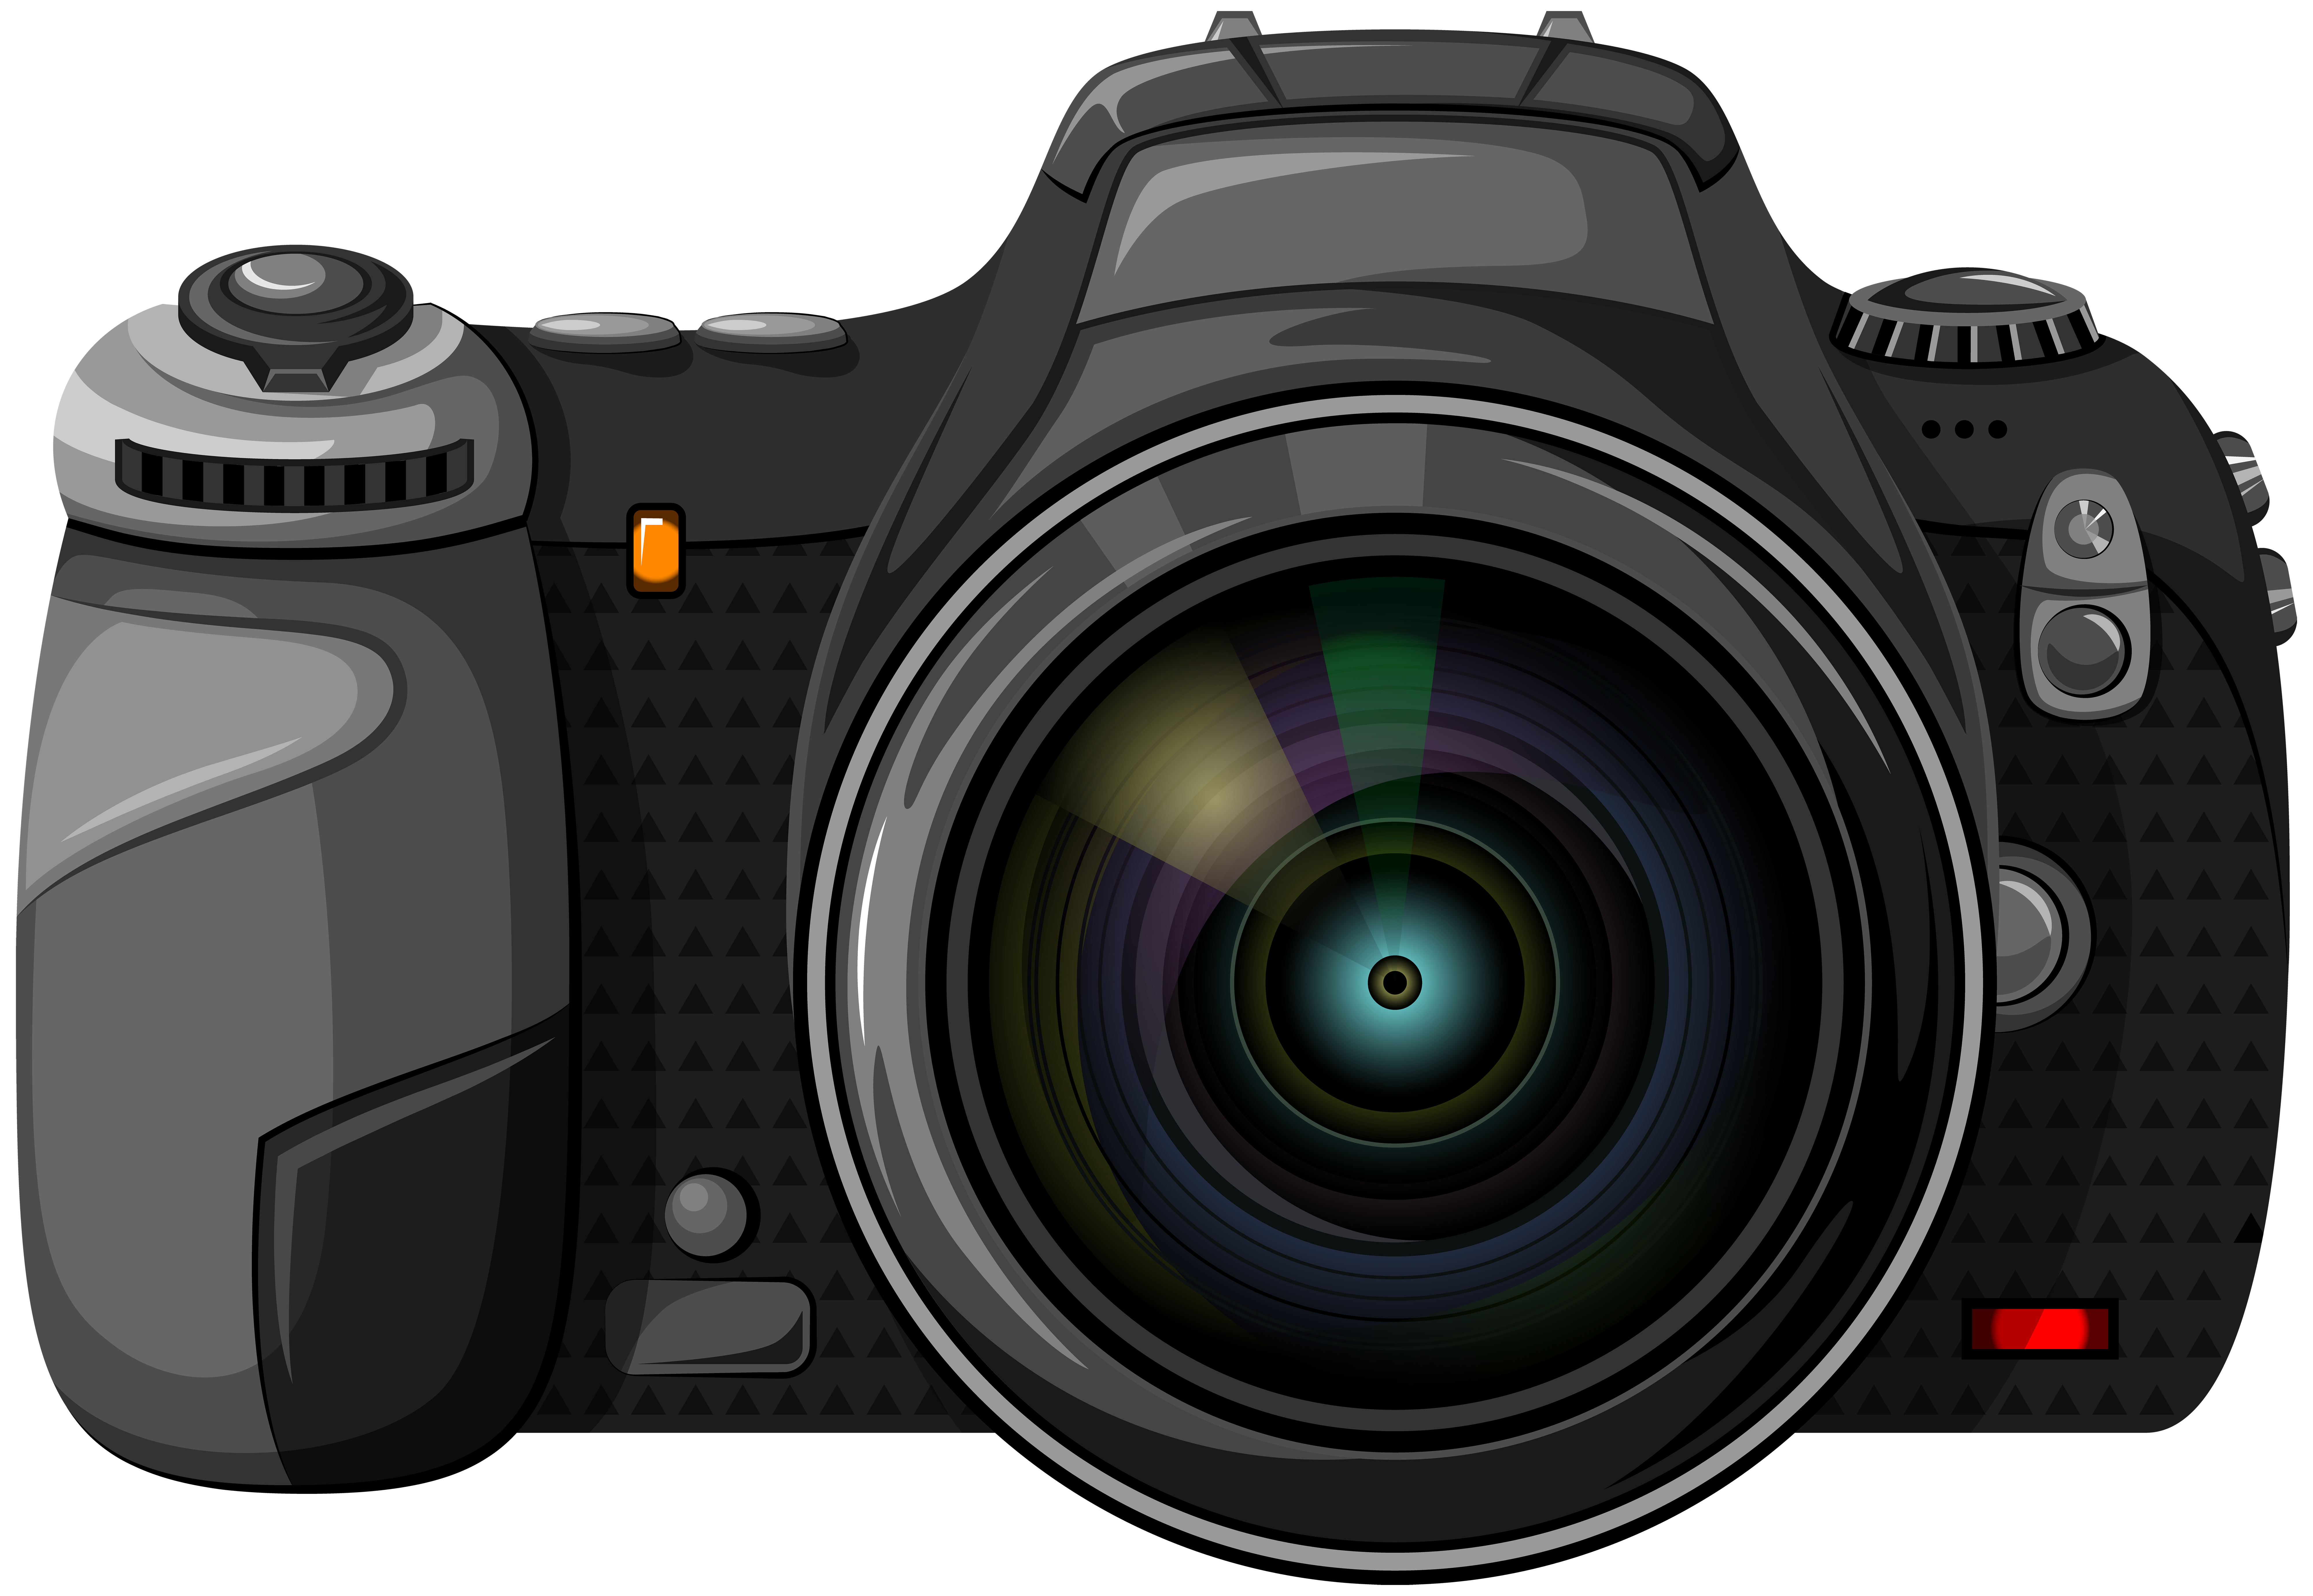 clip art freeuse library  collection of transparent. Camera clipart.